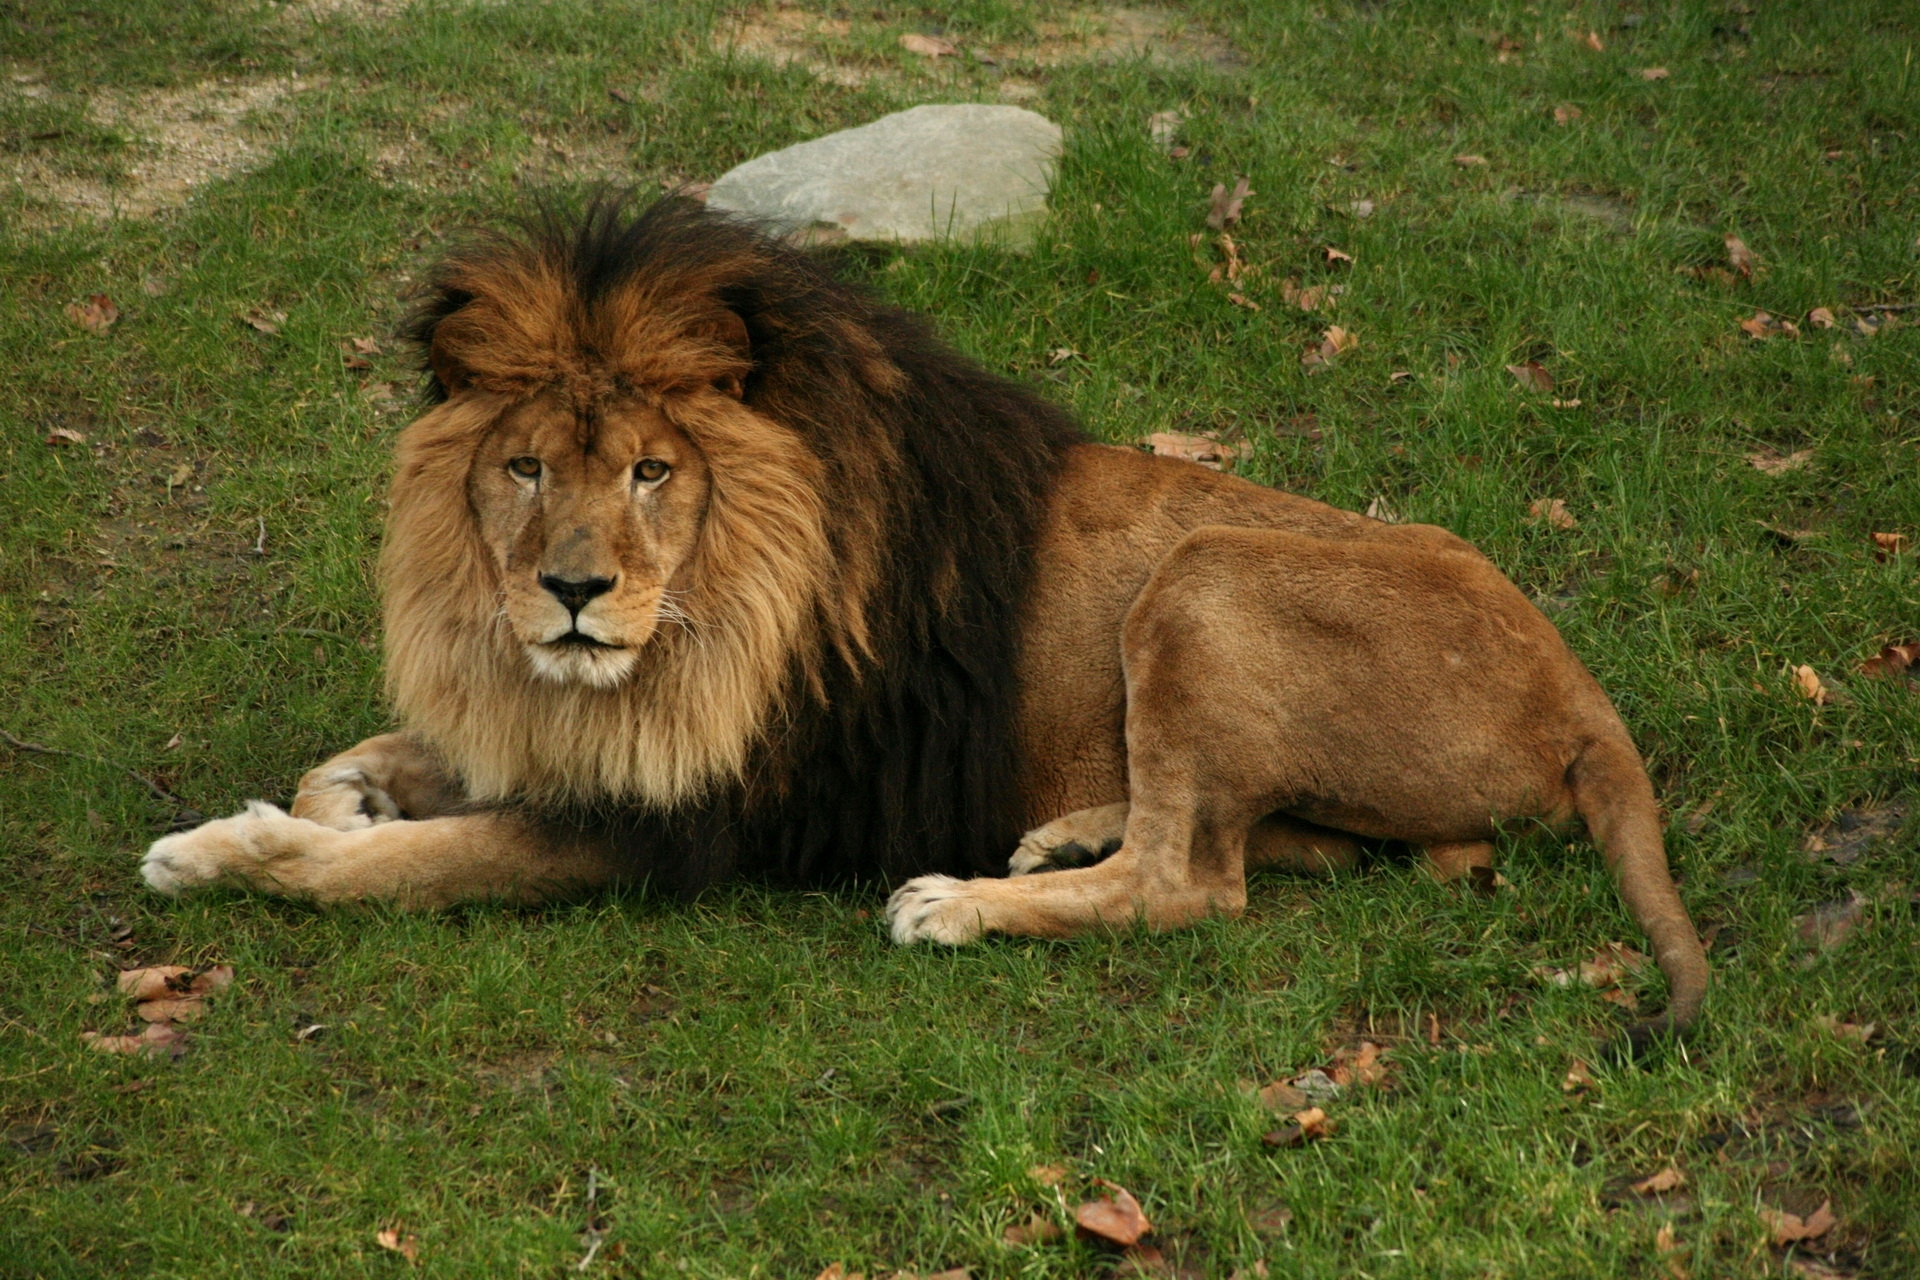 124759 download wallpaper Animals, Lion, To Lie Down, Lie, Grass, Mane, Big Cat, Predator screensavers and pictures for free